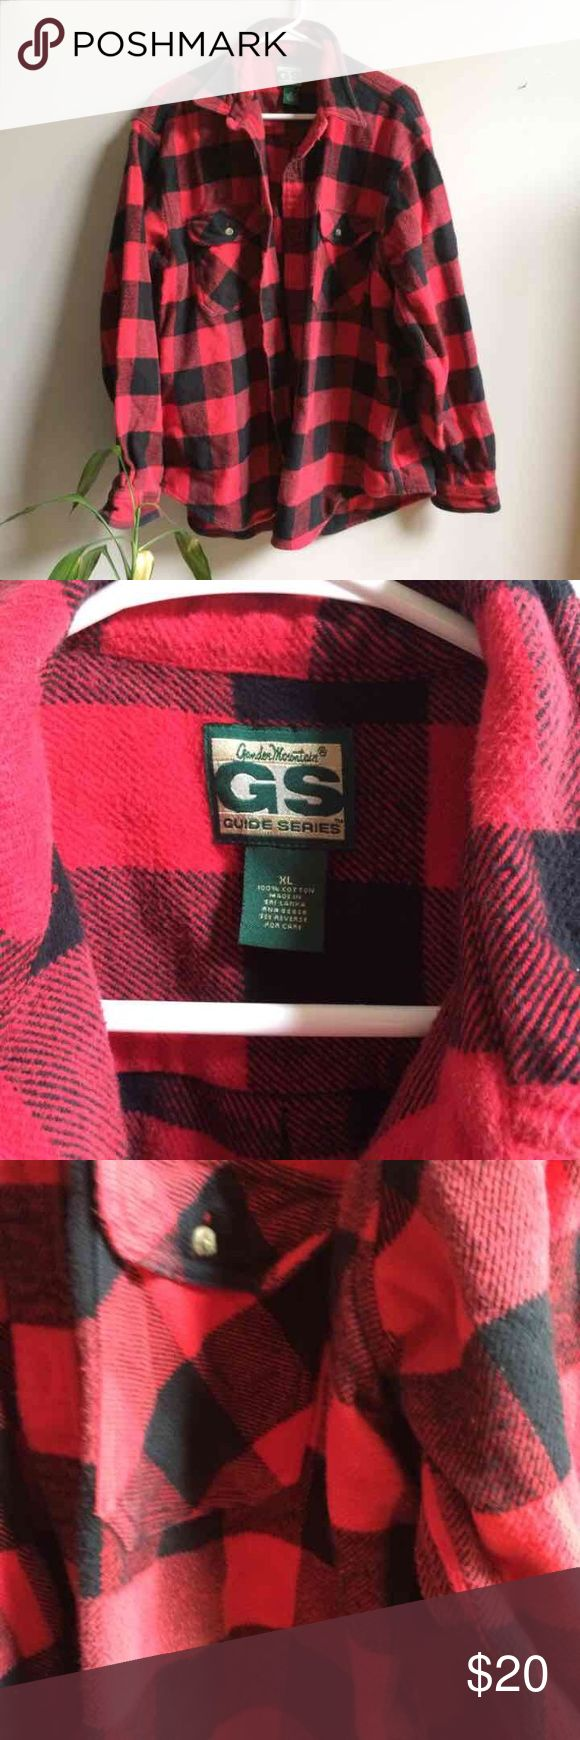 Red Thick Men's Flannel Shirt XL Gander Mountain guide series. Very good condition. Gander Mountain Tops